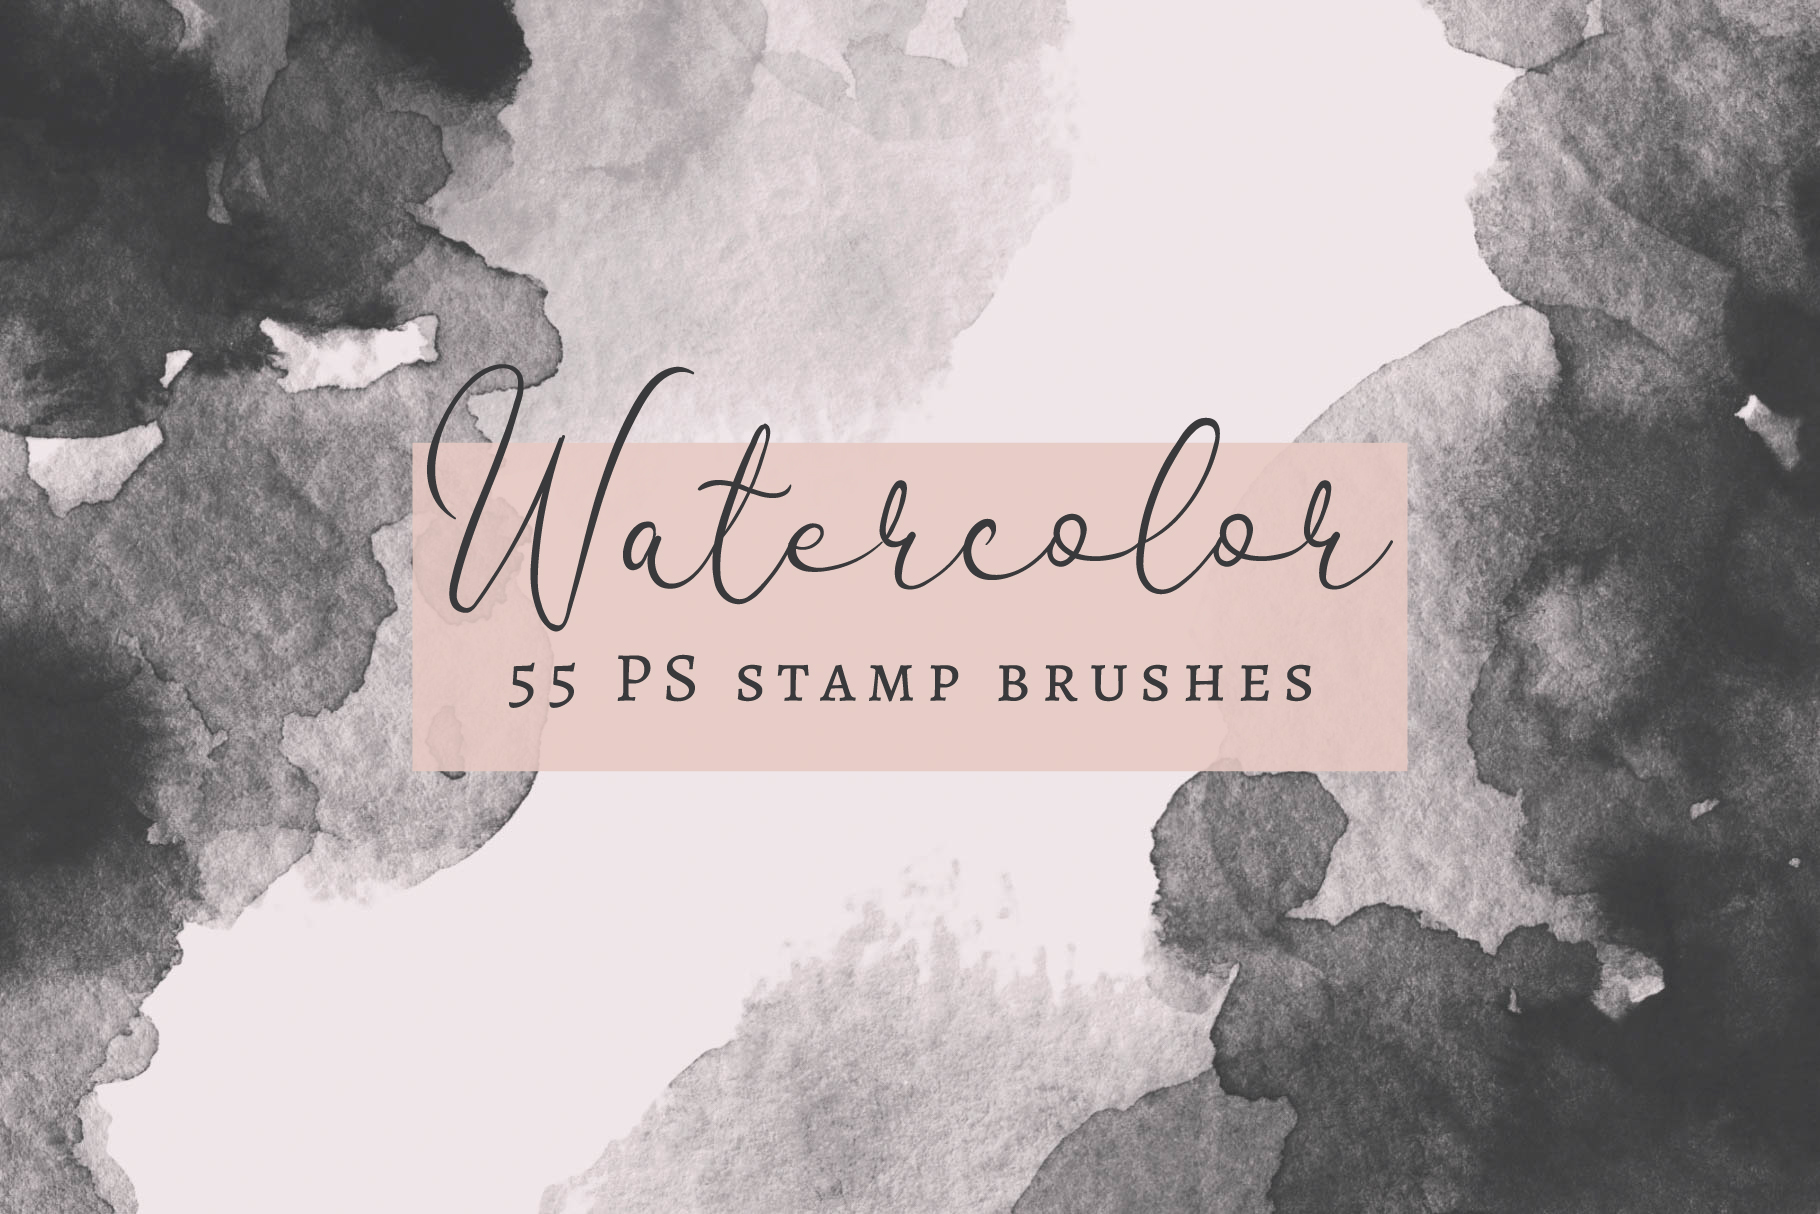 55 PS Watercolor Stamp Brushes example image 1